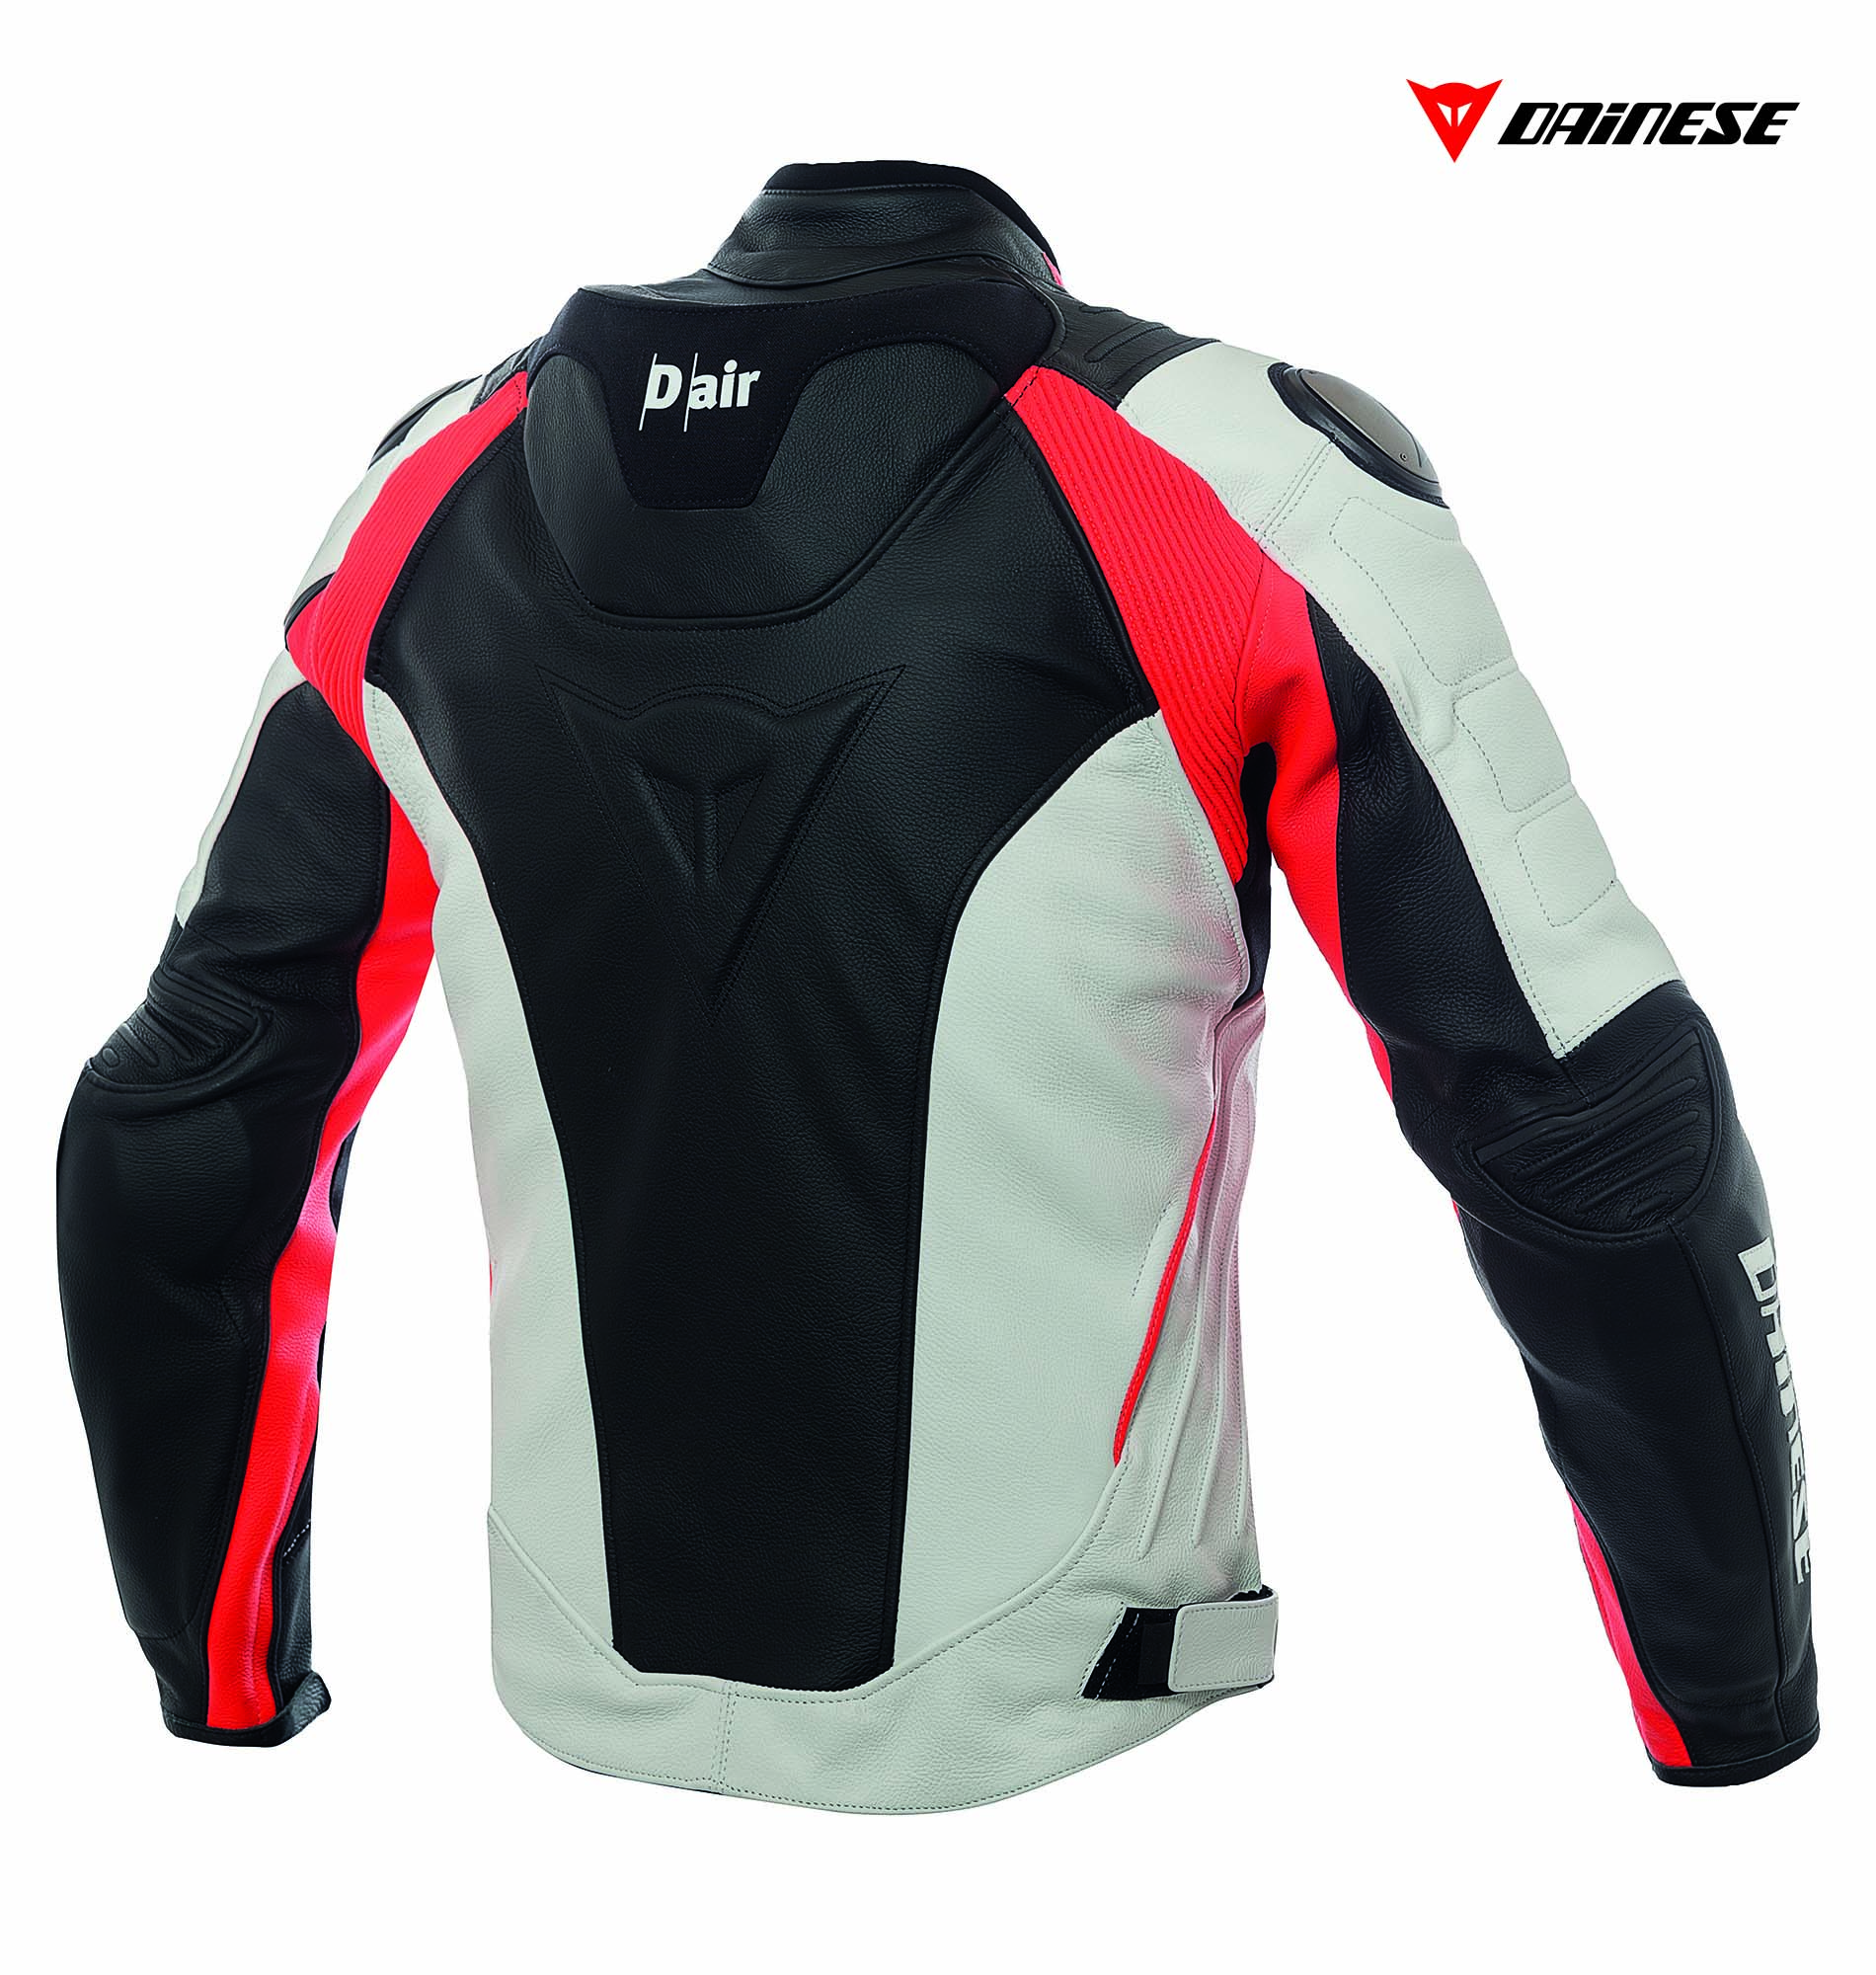 Dainese Just Made Your Motorcycle Jacket Obsolete - Asphalt & Rubber